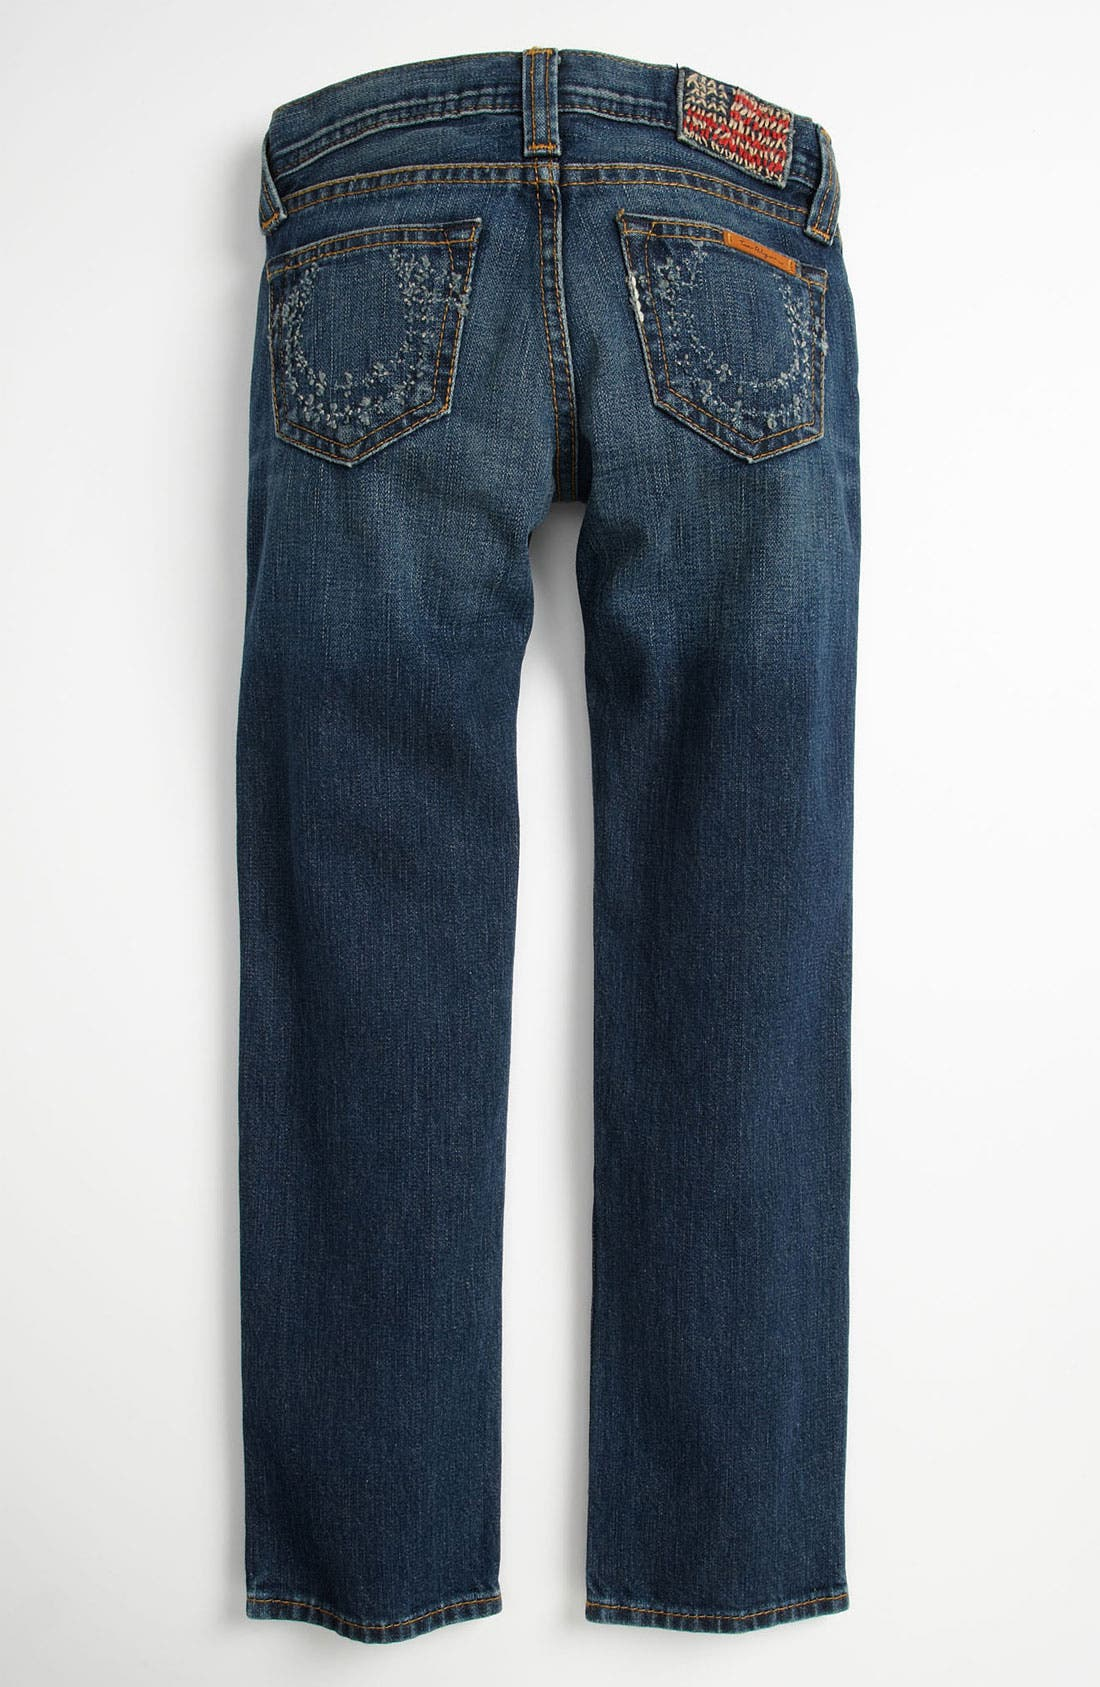 Alternate Image 1 Selected - True Religion Brand Jeans 'Rocco Phantom' Skinny Jeans (Big Boys)